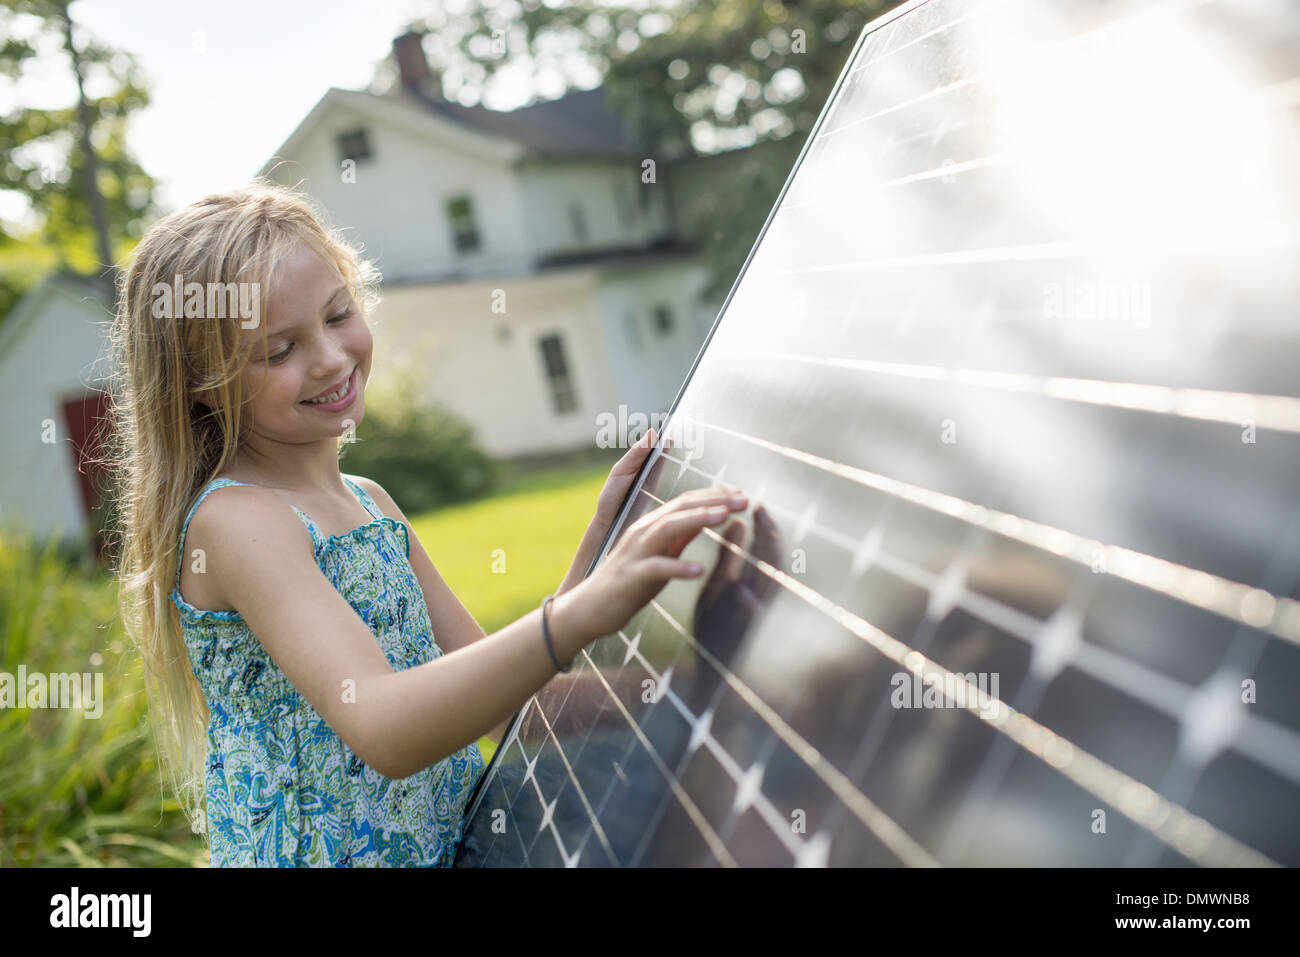 A young girl beside a large solar panel in a farmhouse garden. - Stock Image